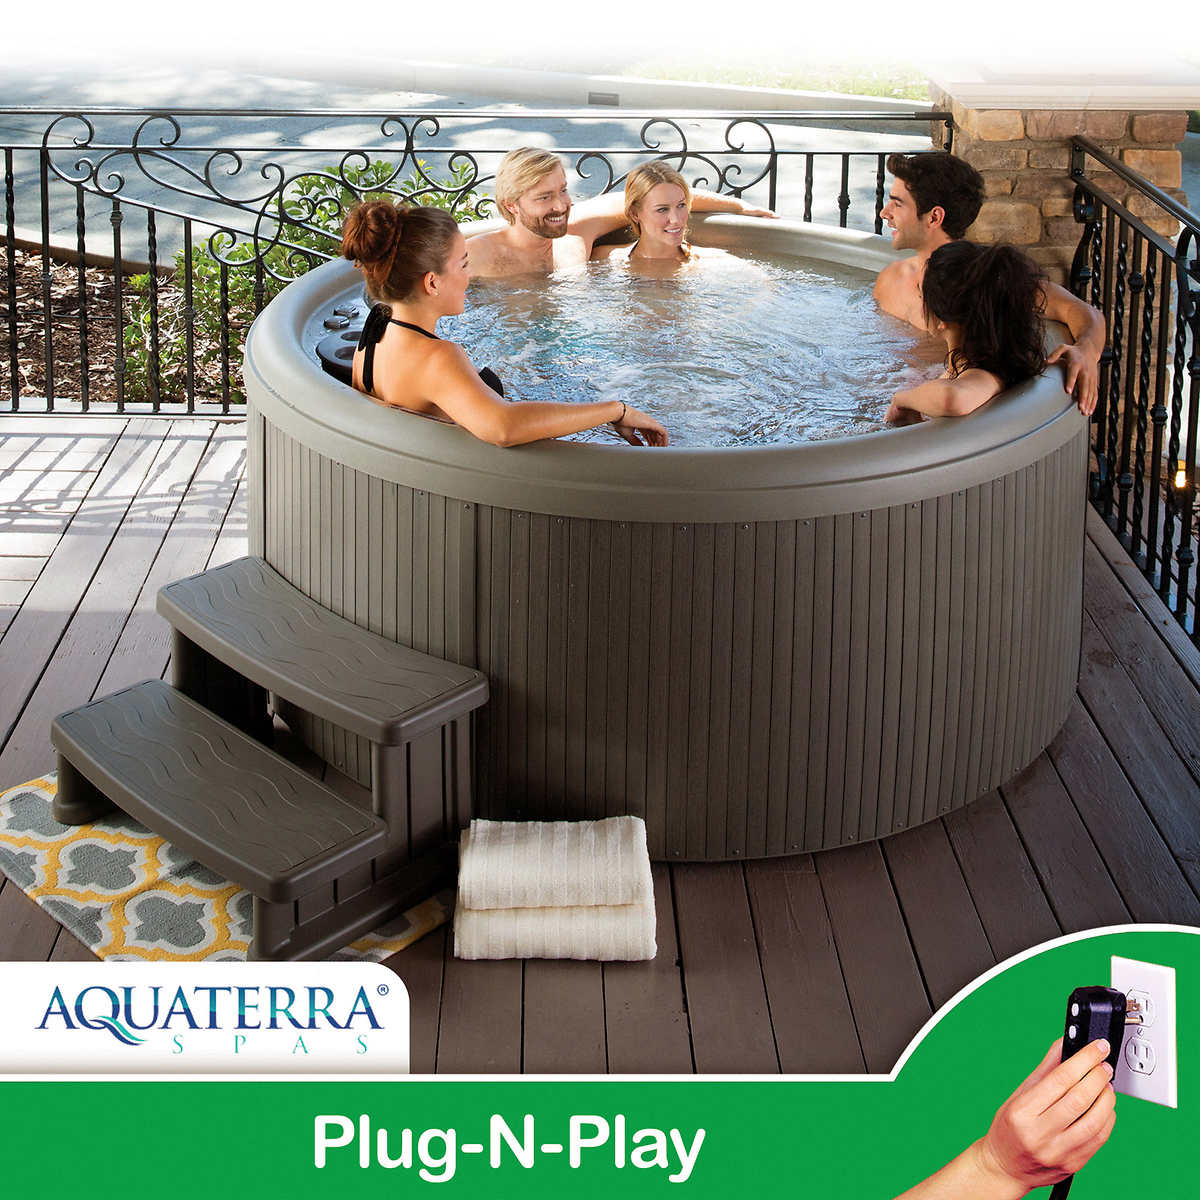 Aquaterra Spas Newporter 30 22 Jet 5 Person Spa Regulations For Wiring Up A Hot Tub 1